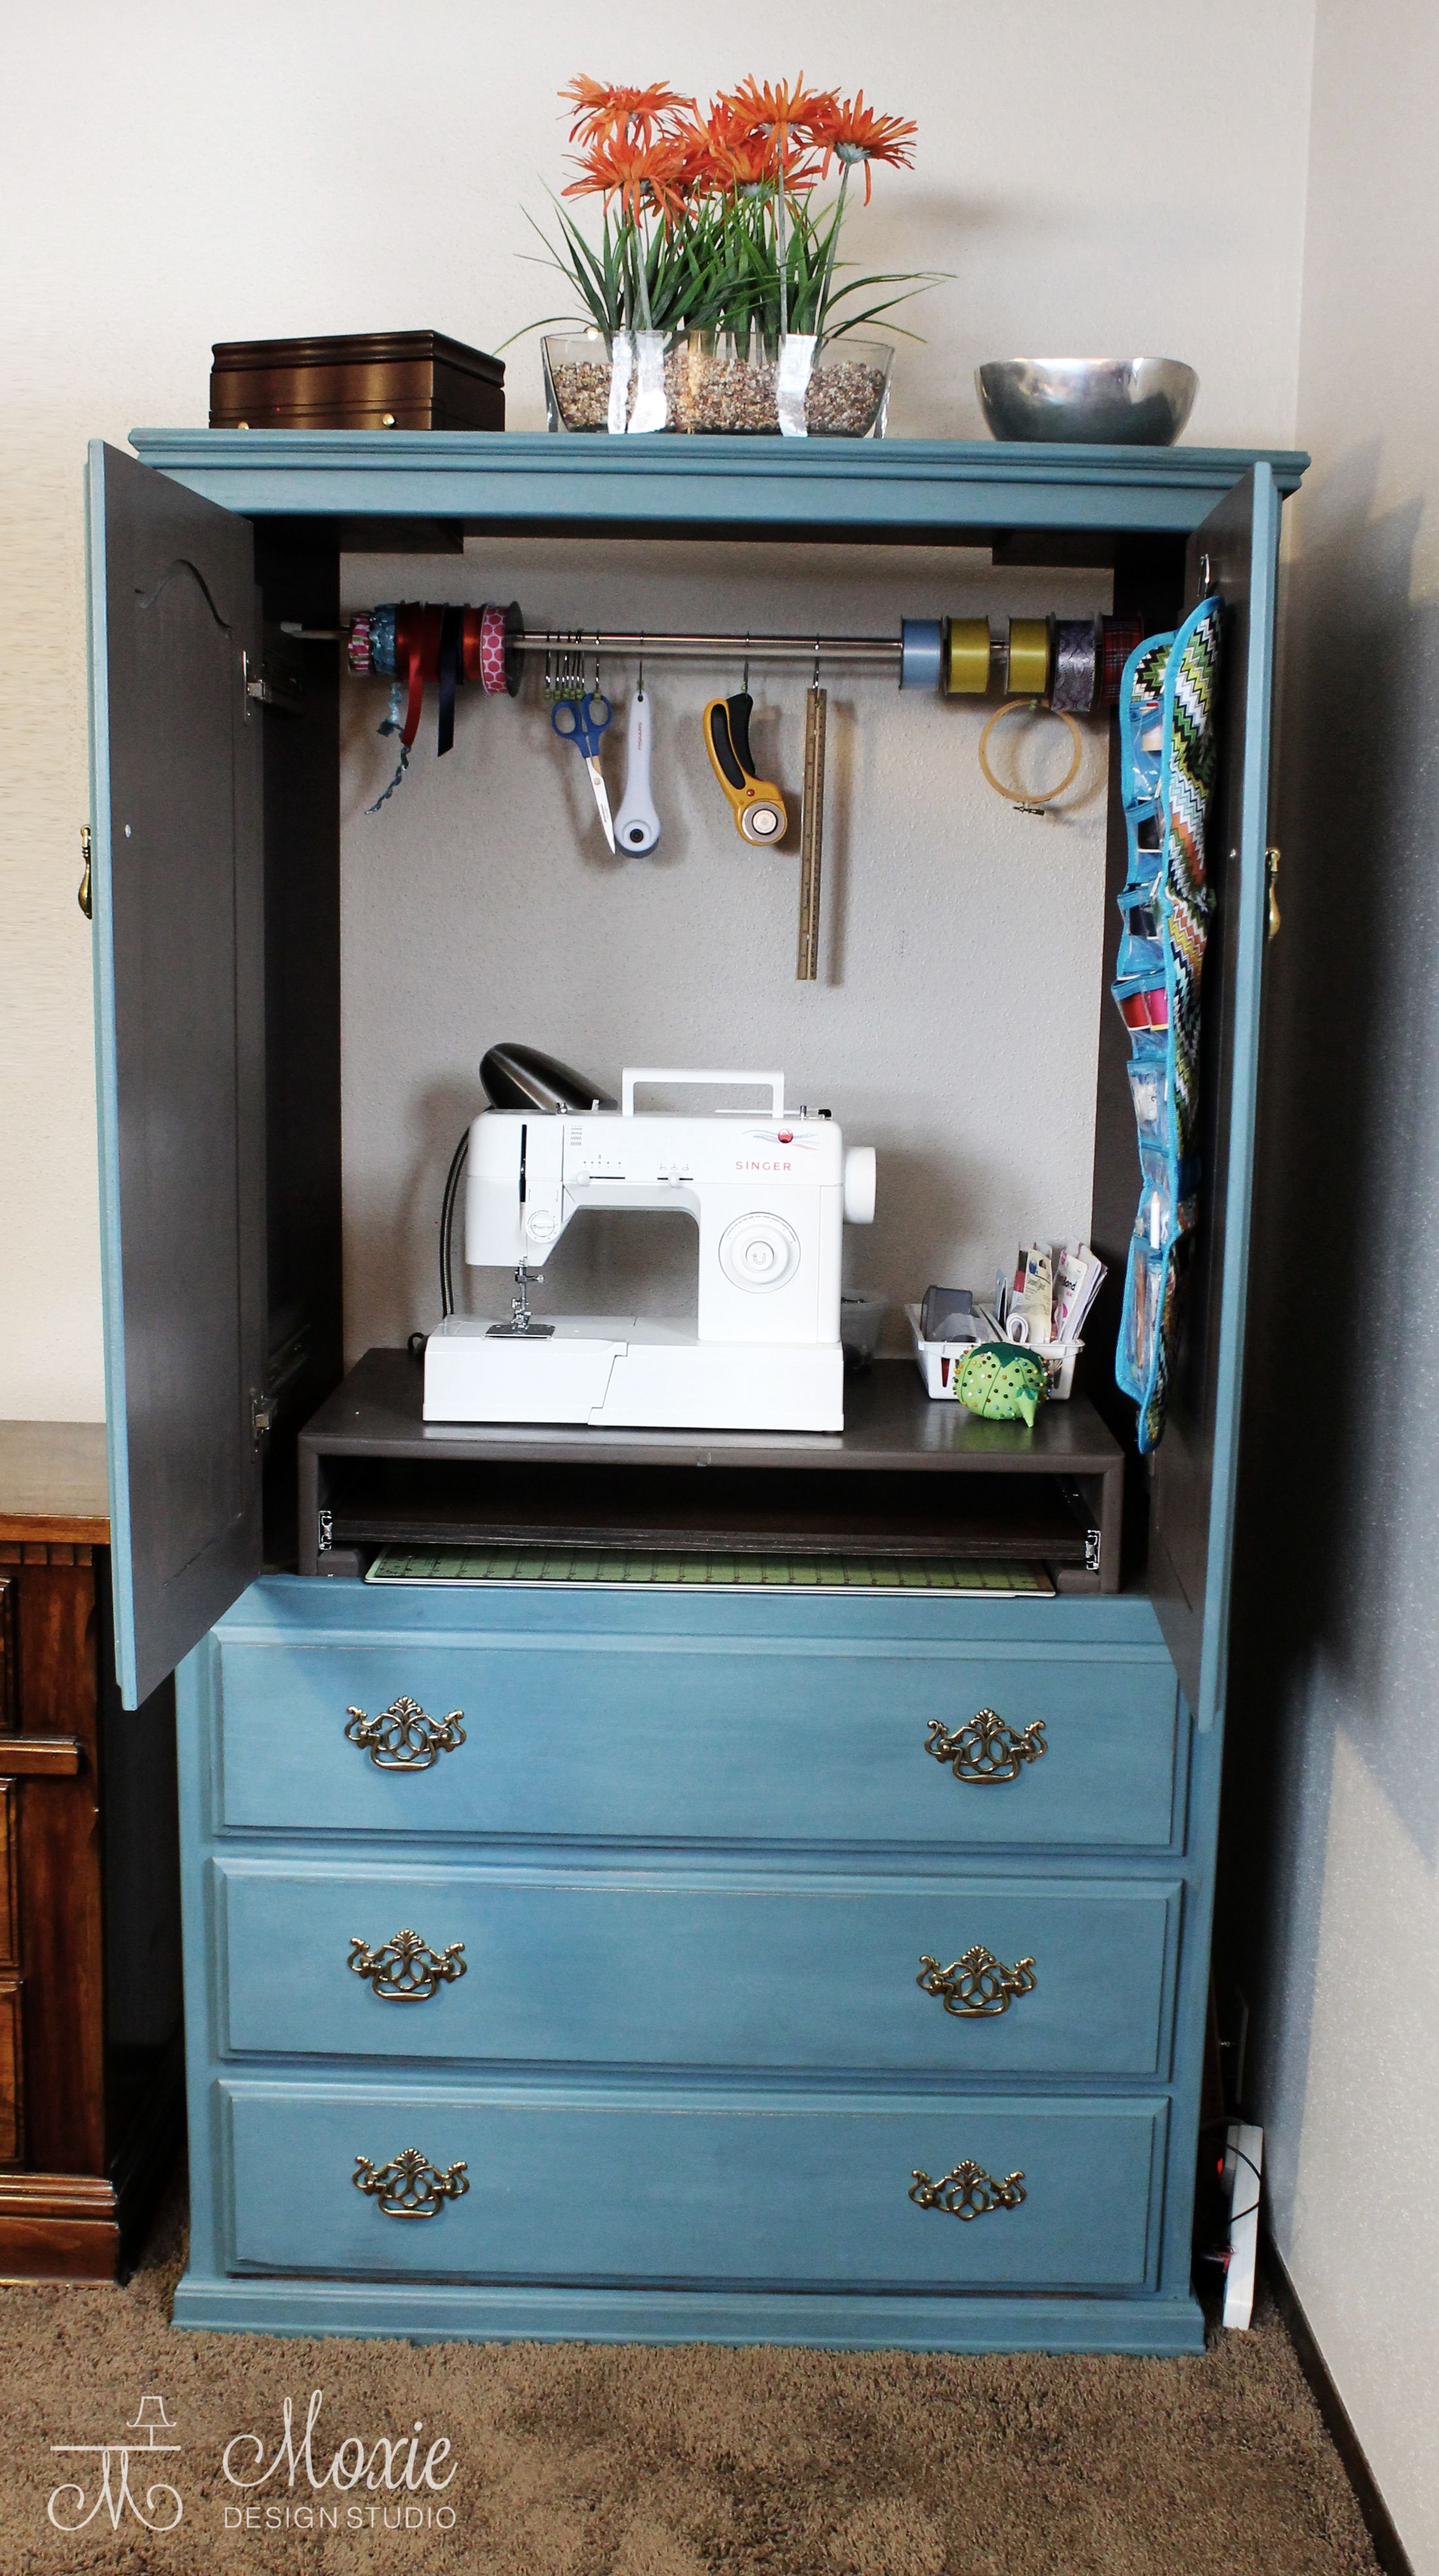 Merveilleux Compact Armoire Sewing Closet Repurpose An Armoir Into A Knock Out Sewing  Cabinet!